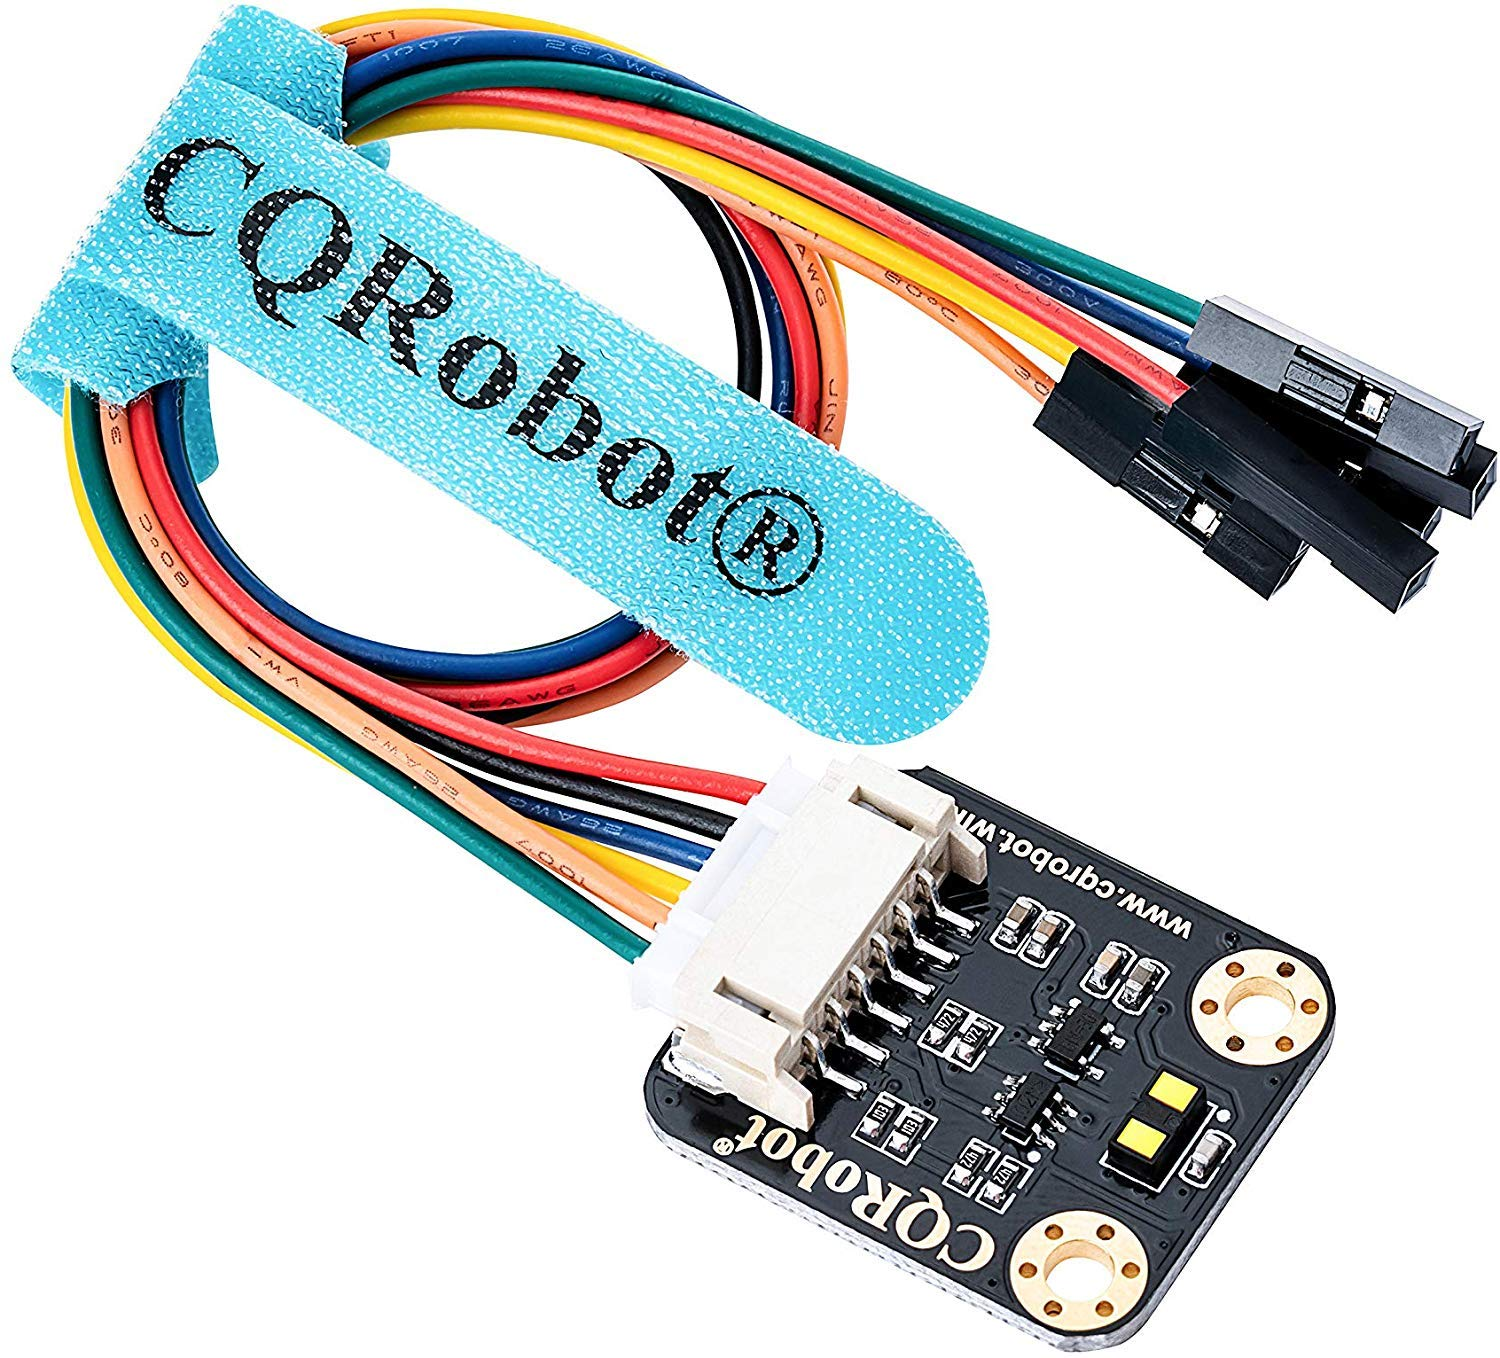 Detection Mode CQRobot VL53L1X Time-of-Flight UAV Smart Home. Long Distance Ranging Sensor for Raspberry Pi//Arduino//STM32 for Mobile Robot Camera I2C Interface Accurate Ranging Up to 4m ToF